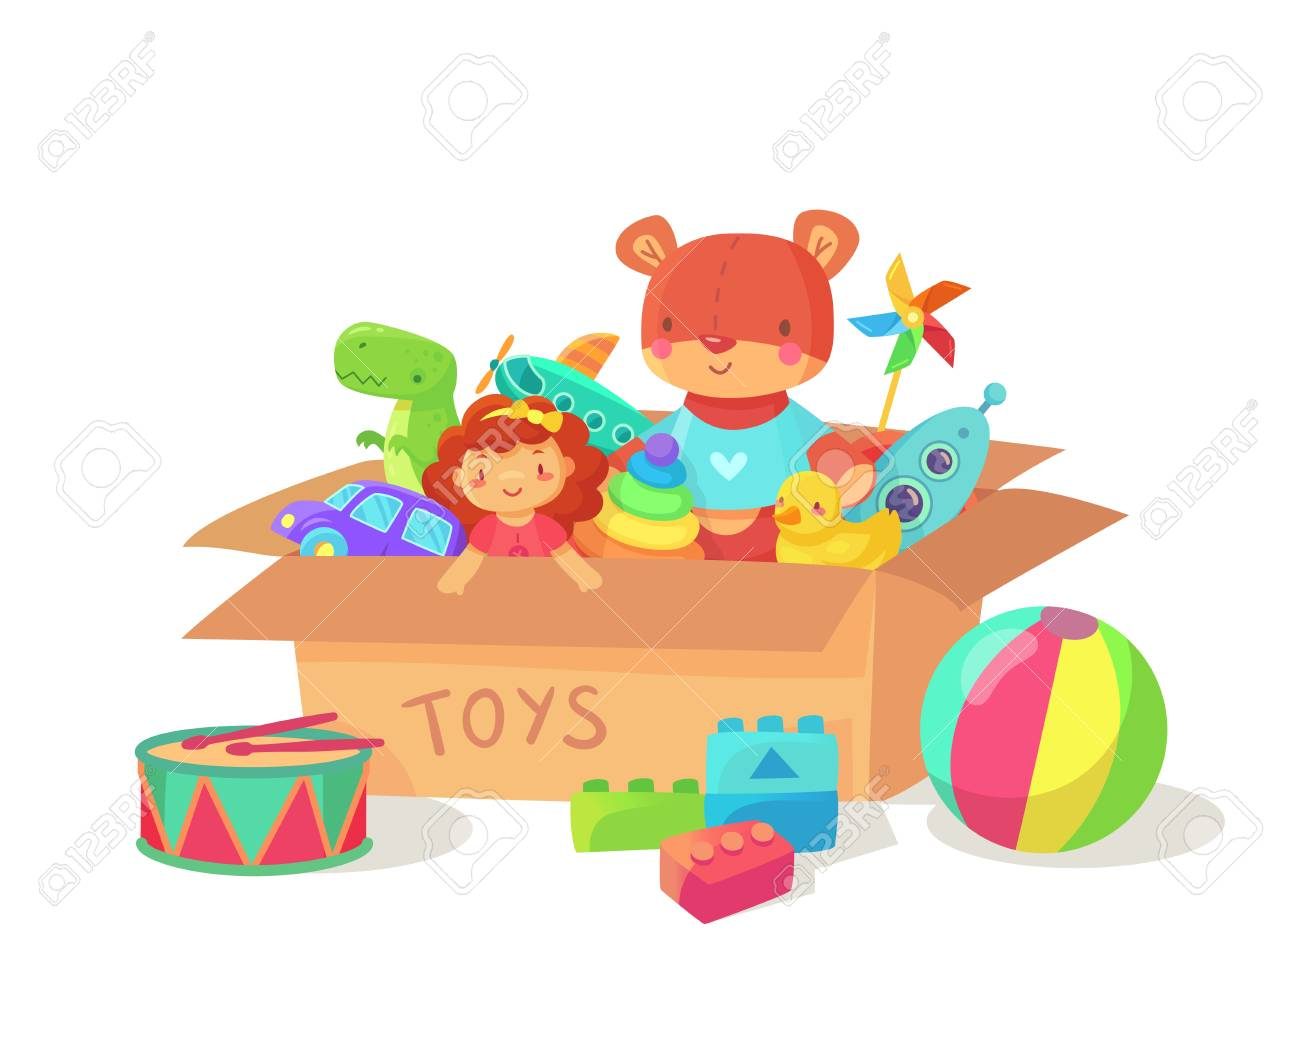 Toy Box Toys Cartoon Kids Toys In Cardboard Toy Box Children Holiday Gift